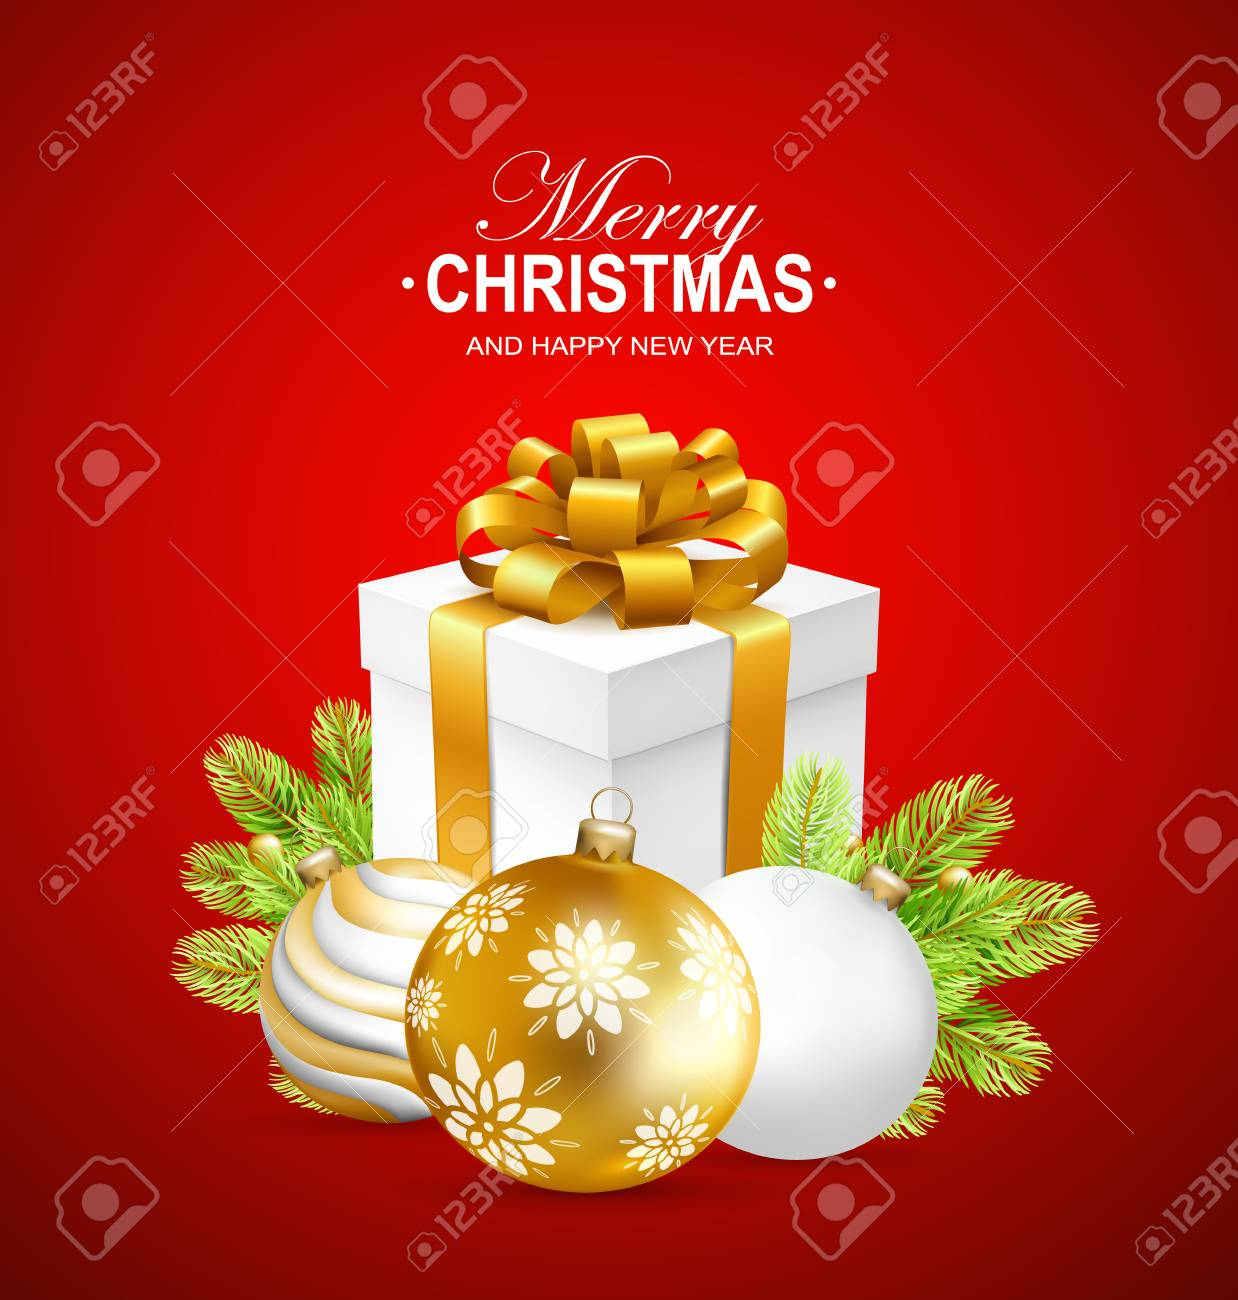 Merry Christmas And Happy New Year Card With Gift Box, Gold ...